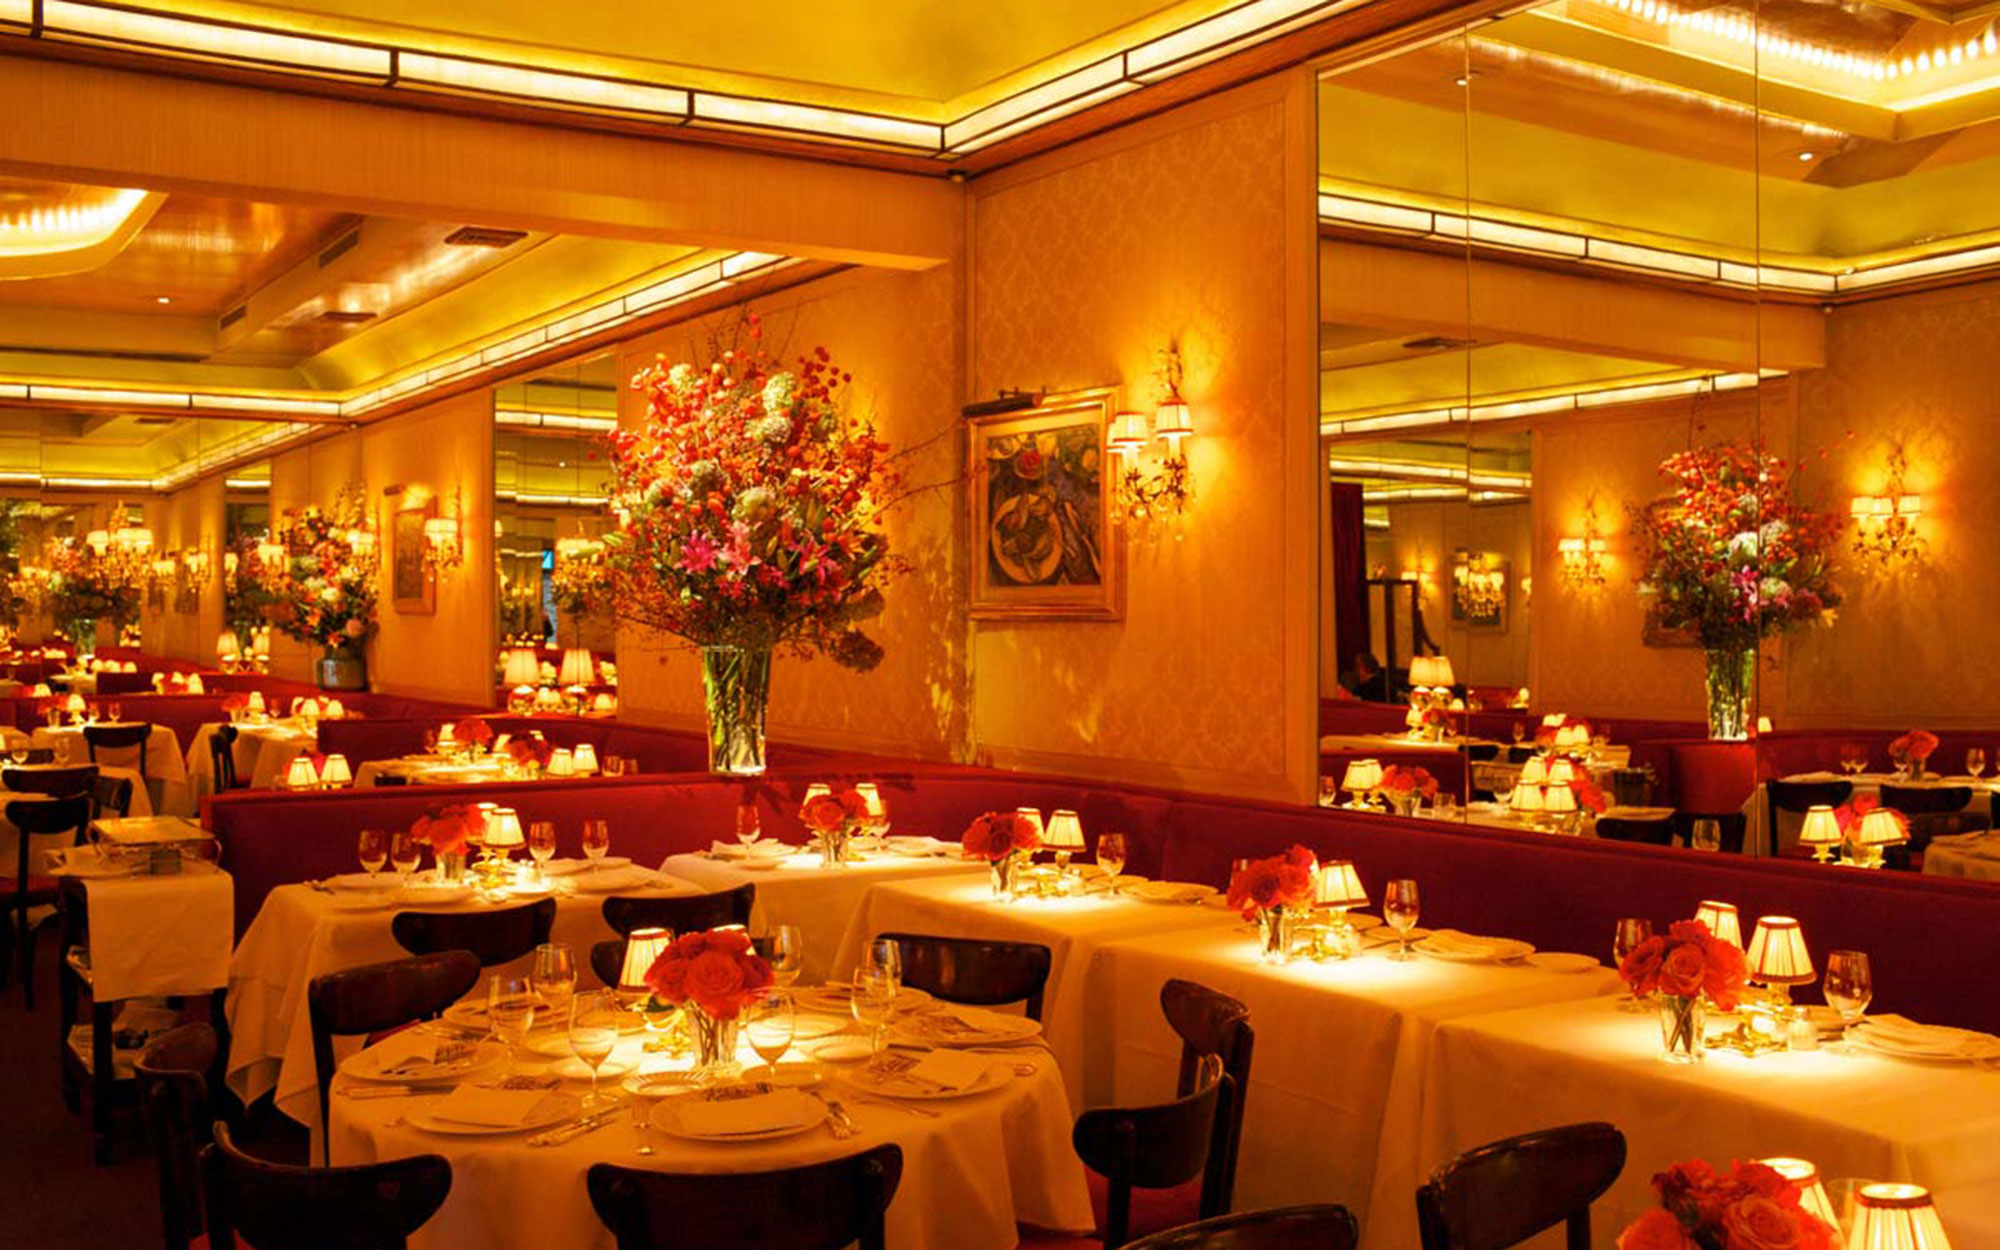 Best Old Restaurants and Bars in NYC: La Grenouille